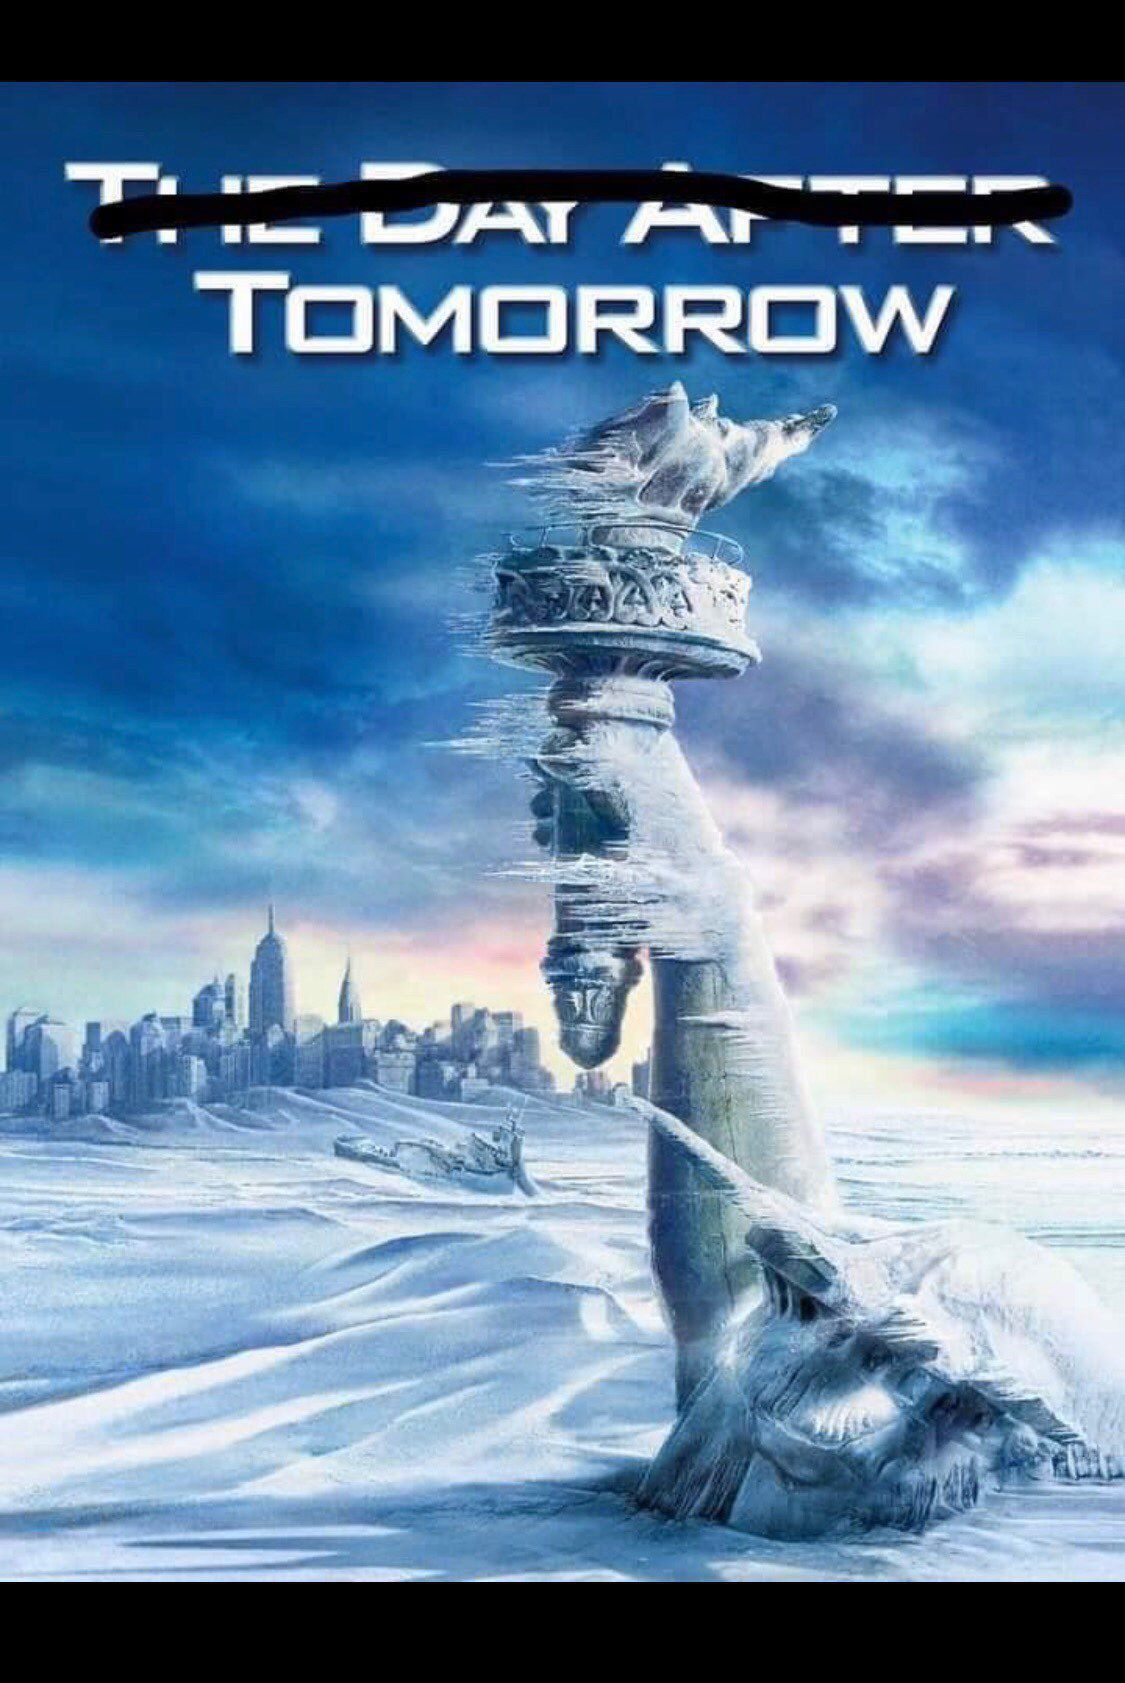 Day After Tomorrow film poster with Day After scratched out.